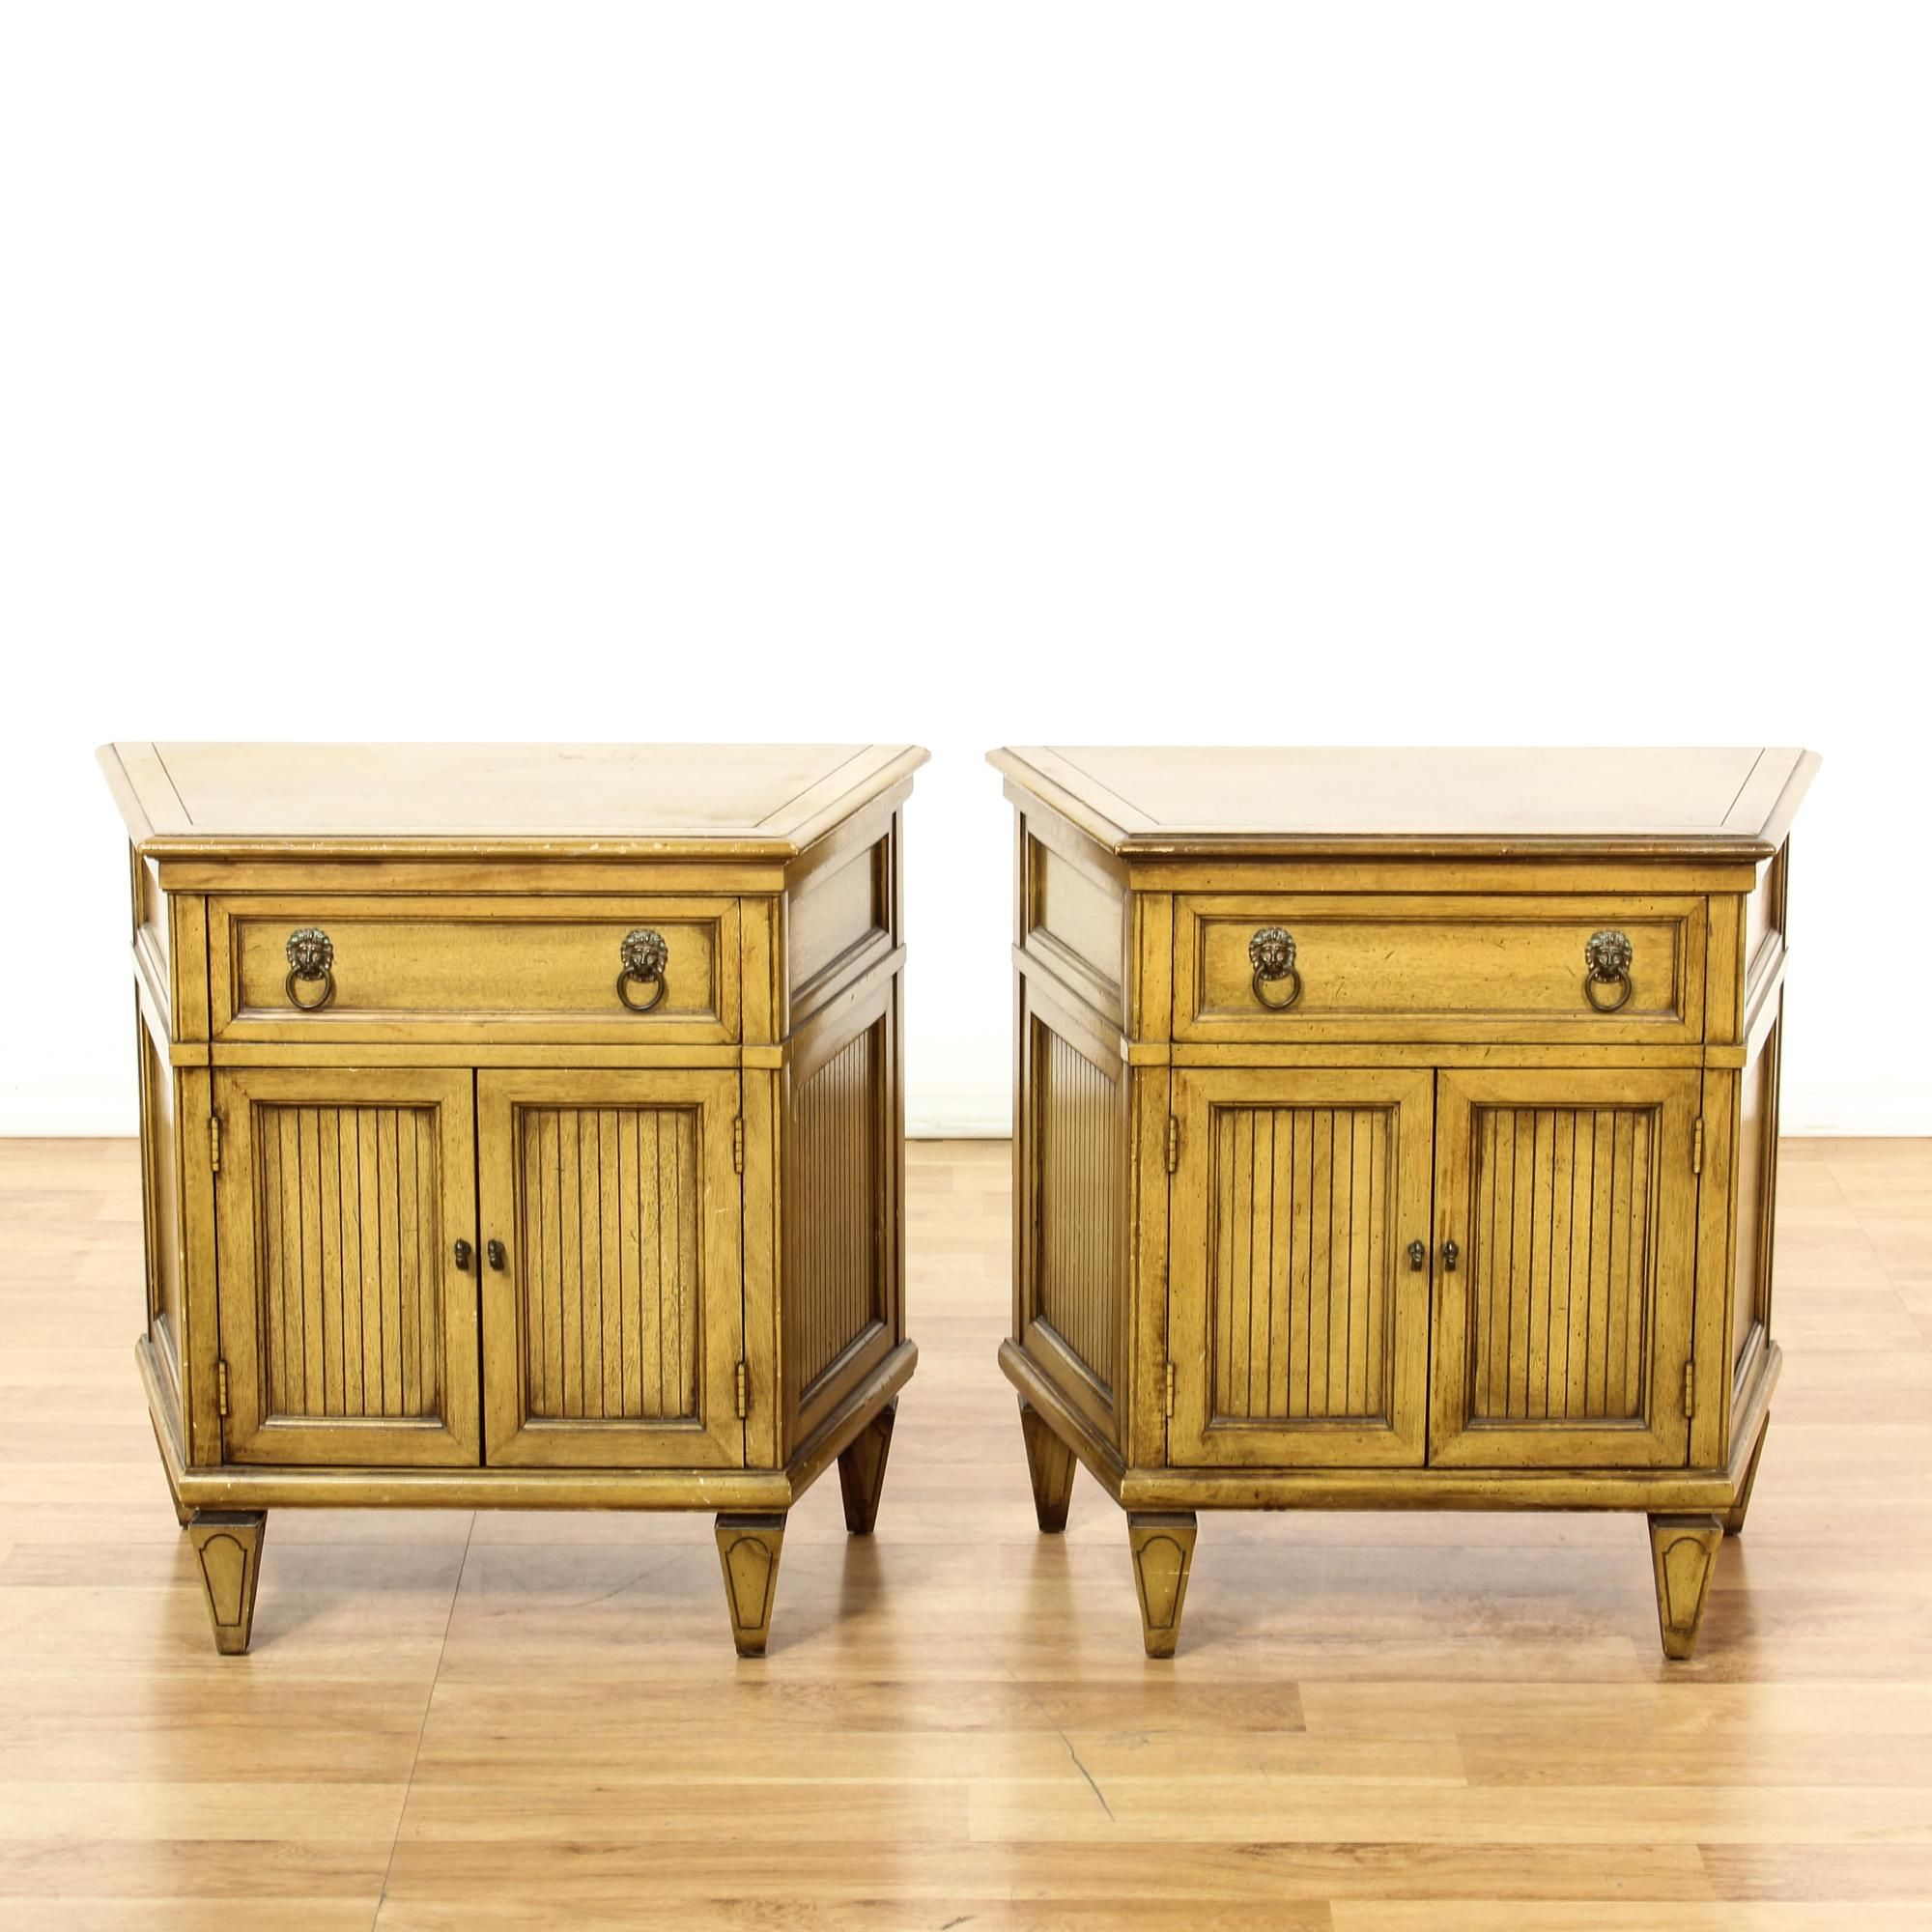 This Pair Of Early American Style Nightstands Are Featured In A